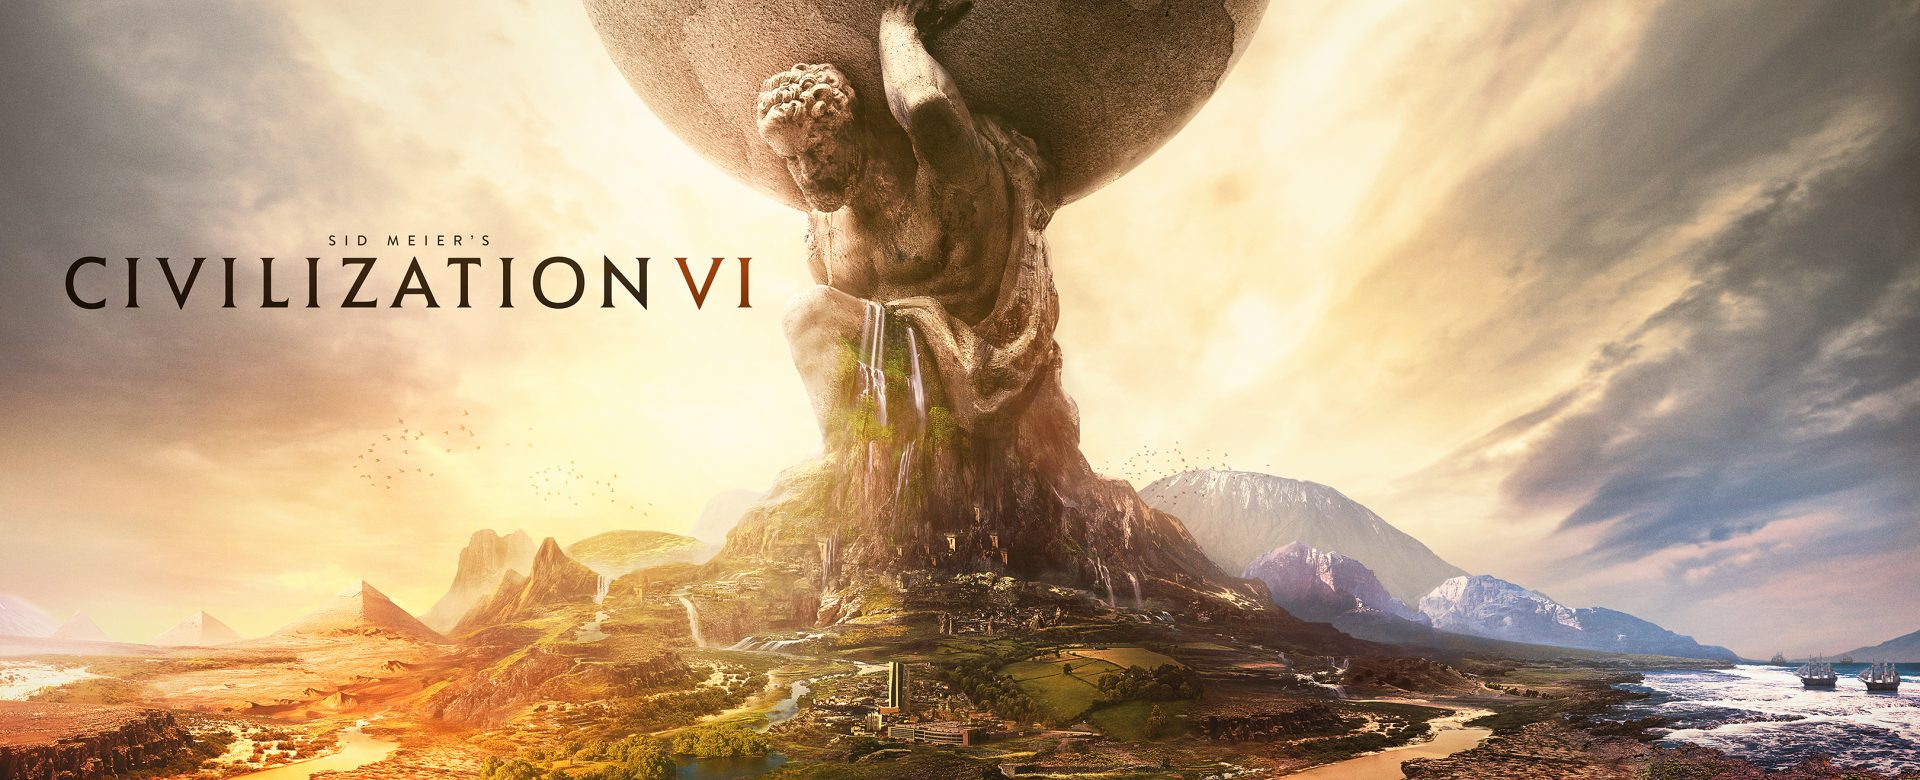 The Art of Civilization 6